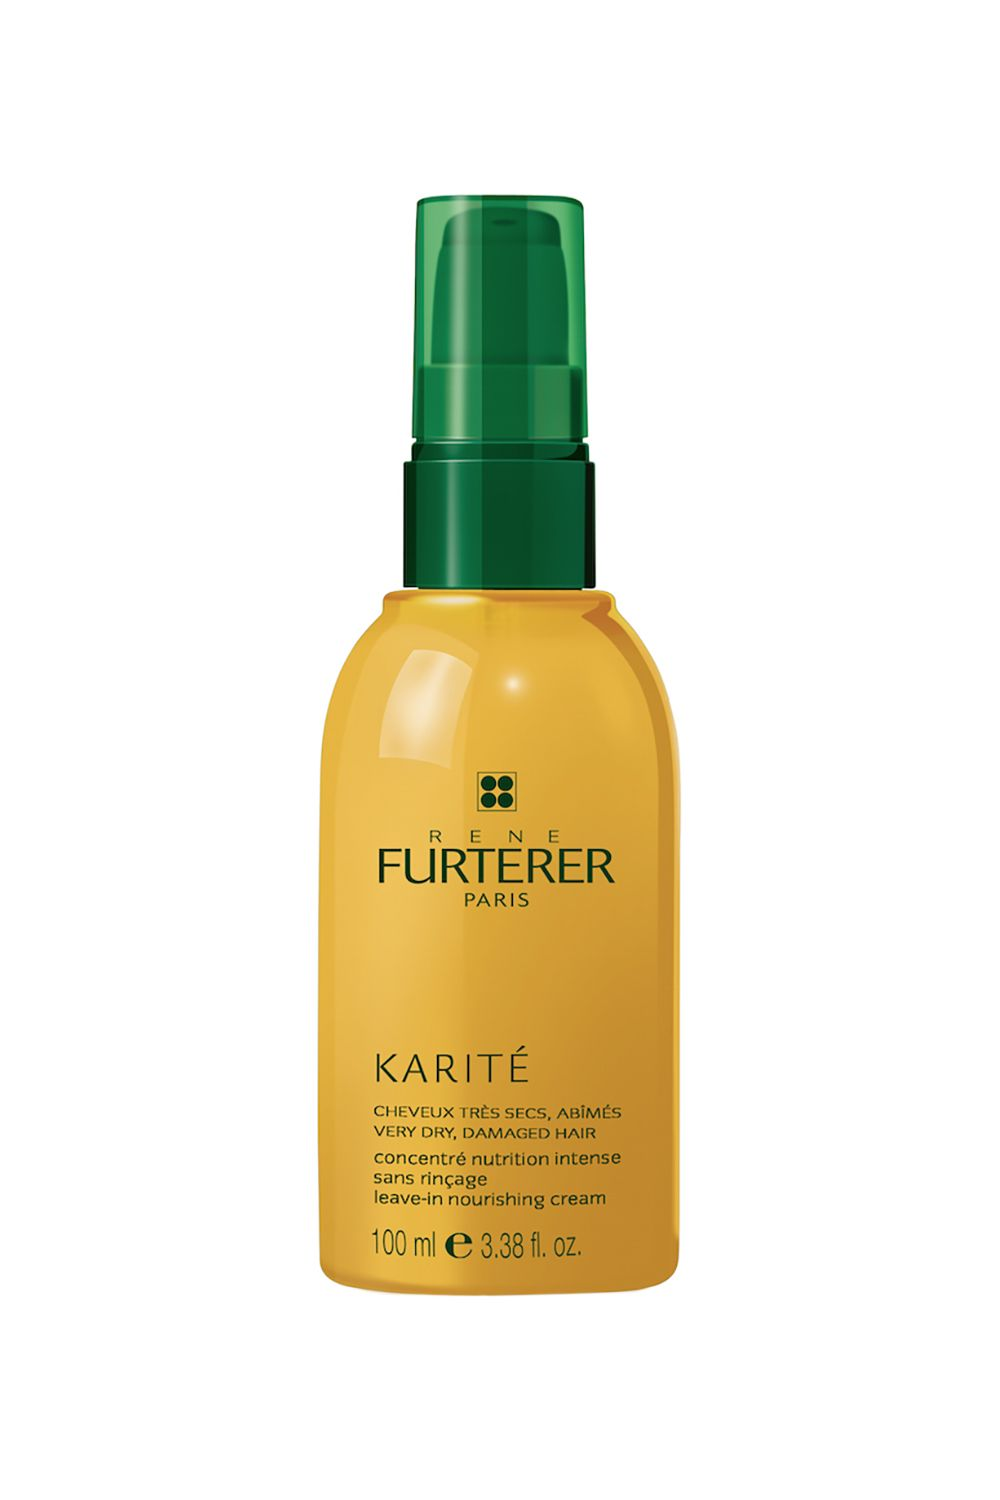 "<p>*Do* get in the shower, and when you come out, smooth on some of this heavier cream to subdue any fuzz. </p><p>René Furterer Karité Leave-In Nourishing Cream, $28, <a href=""http://rstyle.me/n/bvvu3abqb8f"" target=""_blank"">beauty.com</a>.</p>"